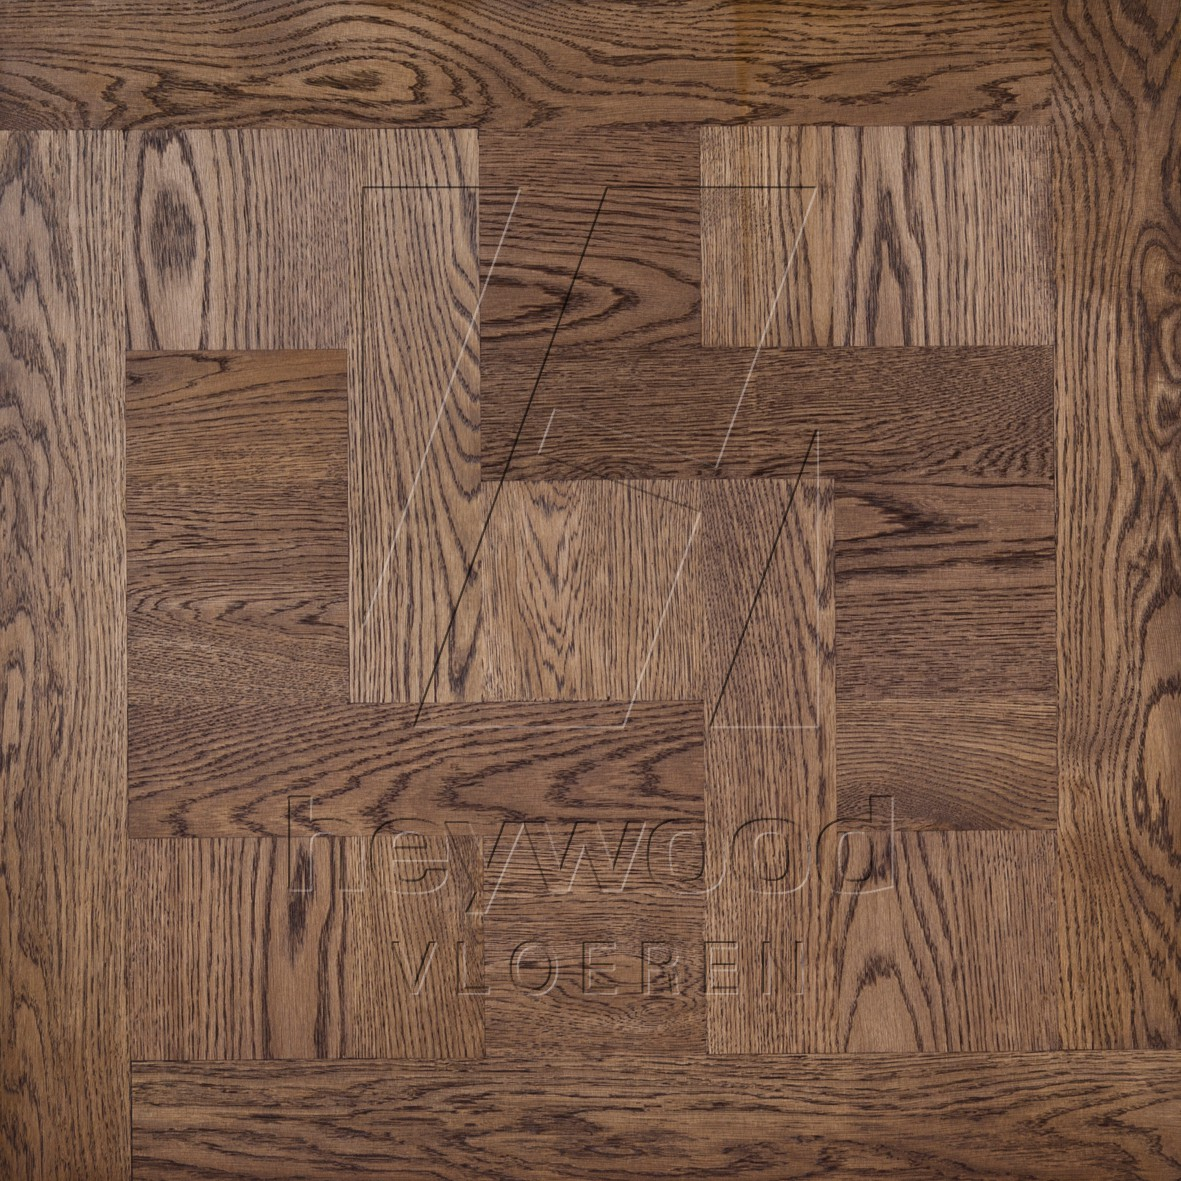 Renaissance 810 x 810 mm in Floor Panels & 3D Wall Panels of Pattern & Panel Floors